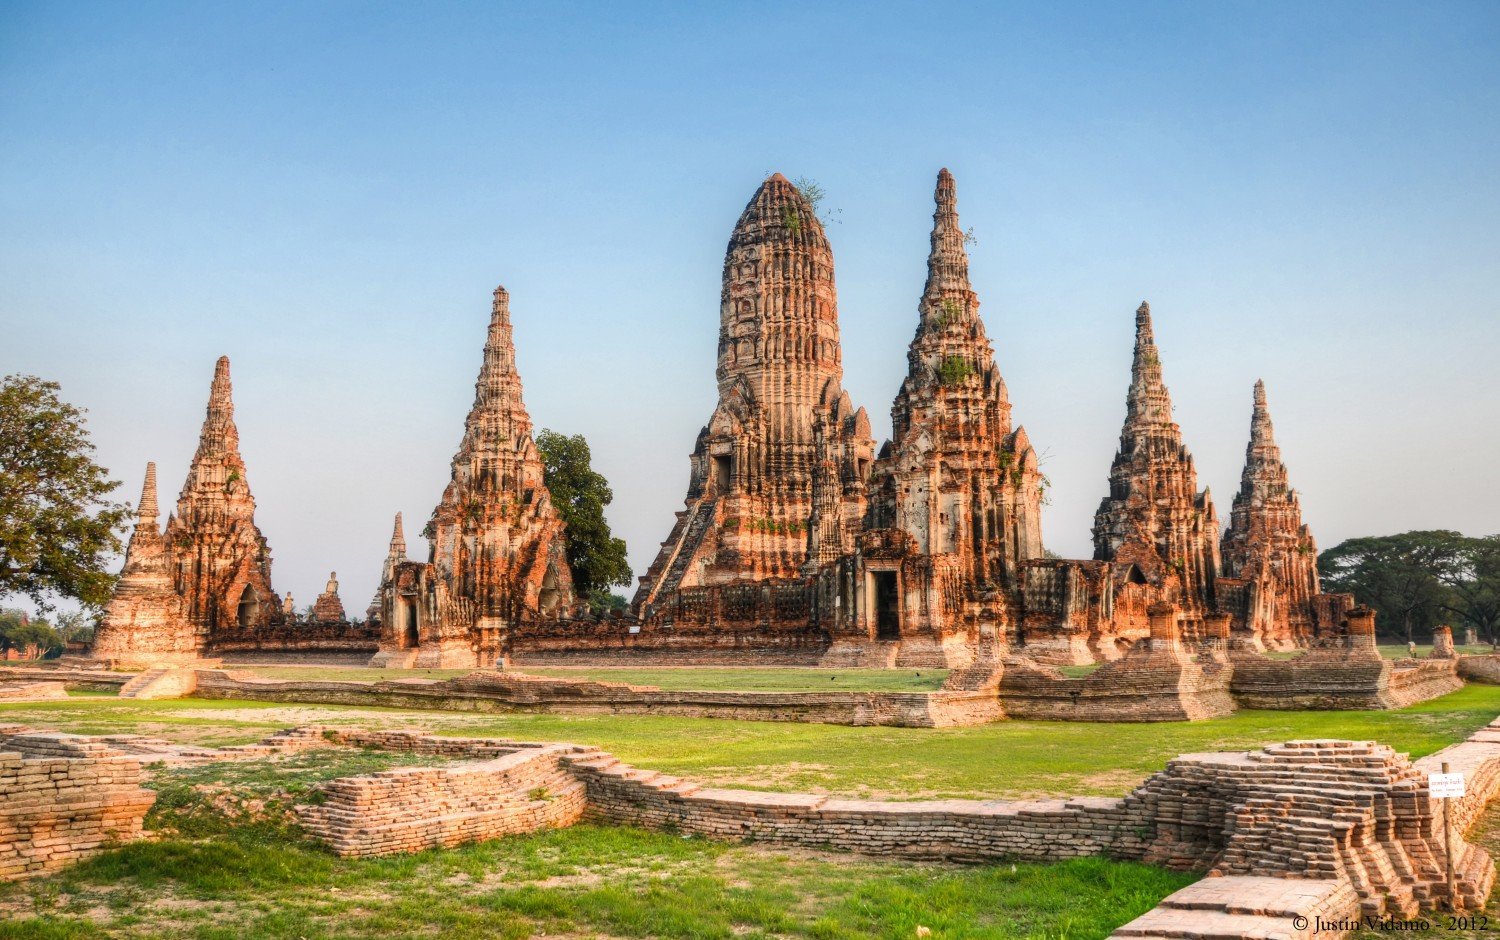 Ayutthaya. Four awesome Southeast Asia travel itineraries I Photography I Itinerary I Landscape I Food I Architecture I Laos I Thailand I Cambodia I Myanmar I Malaysia I Vietnam. Read the full travel guide now #travel #backpacking